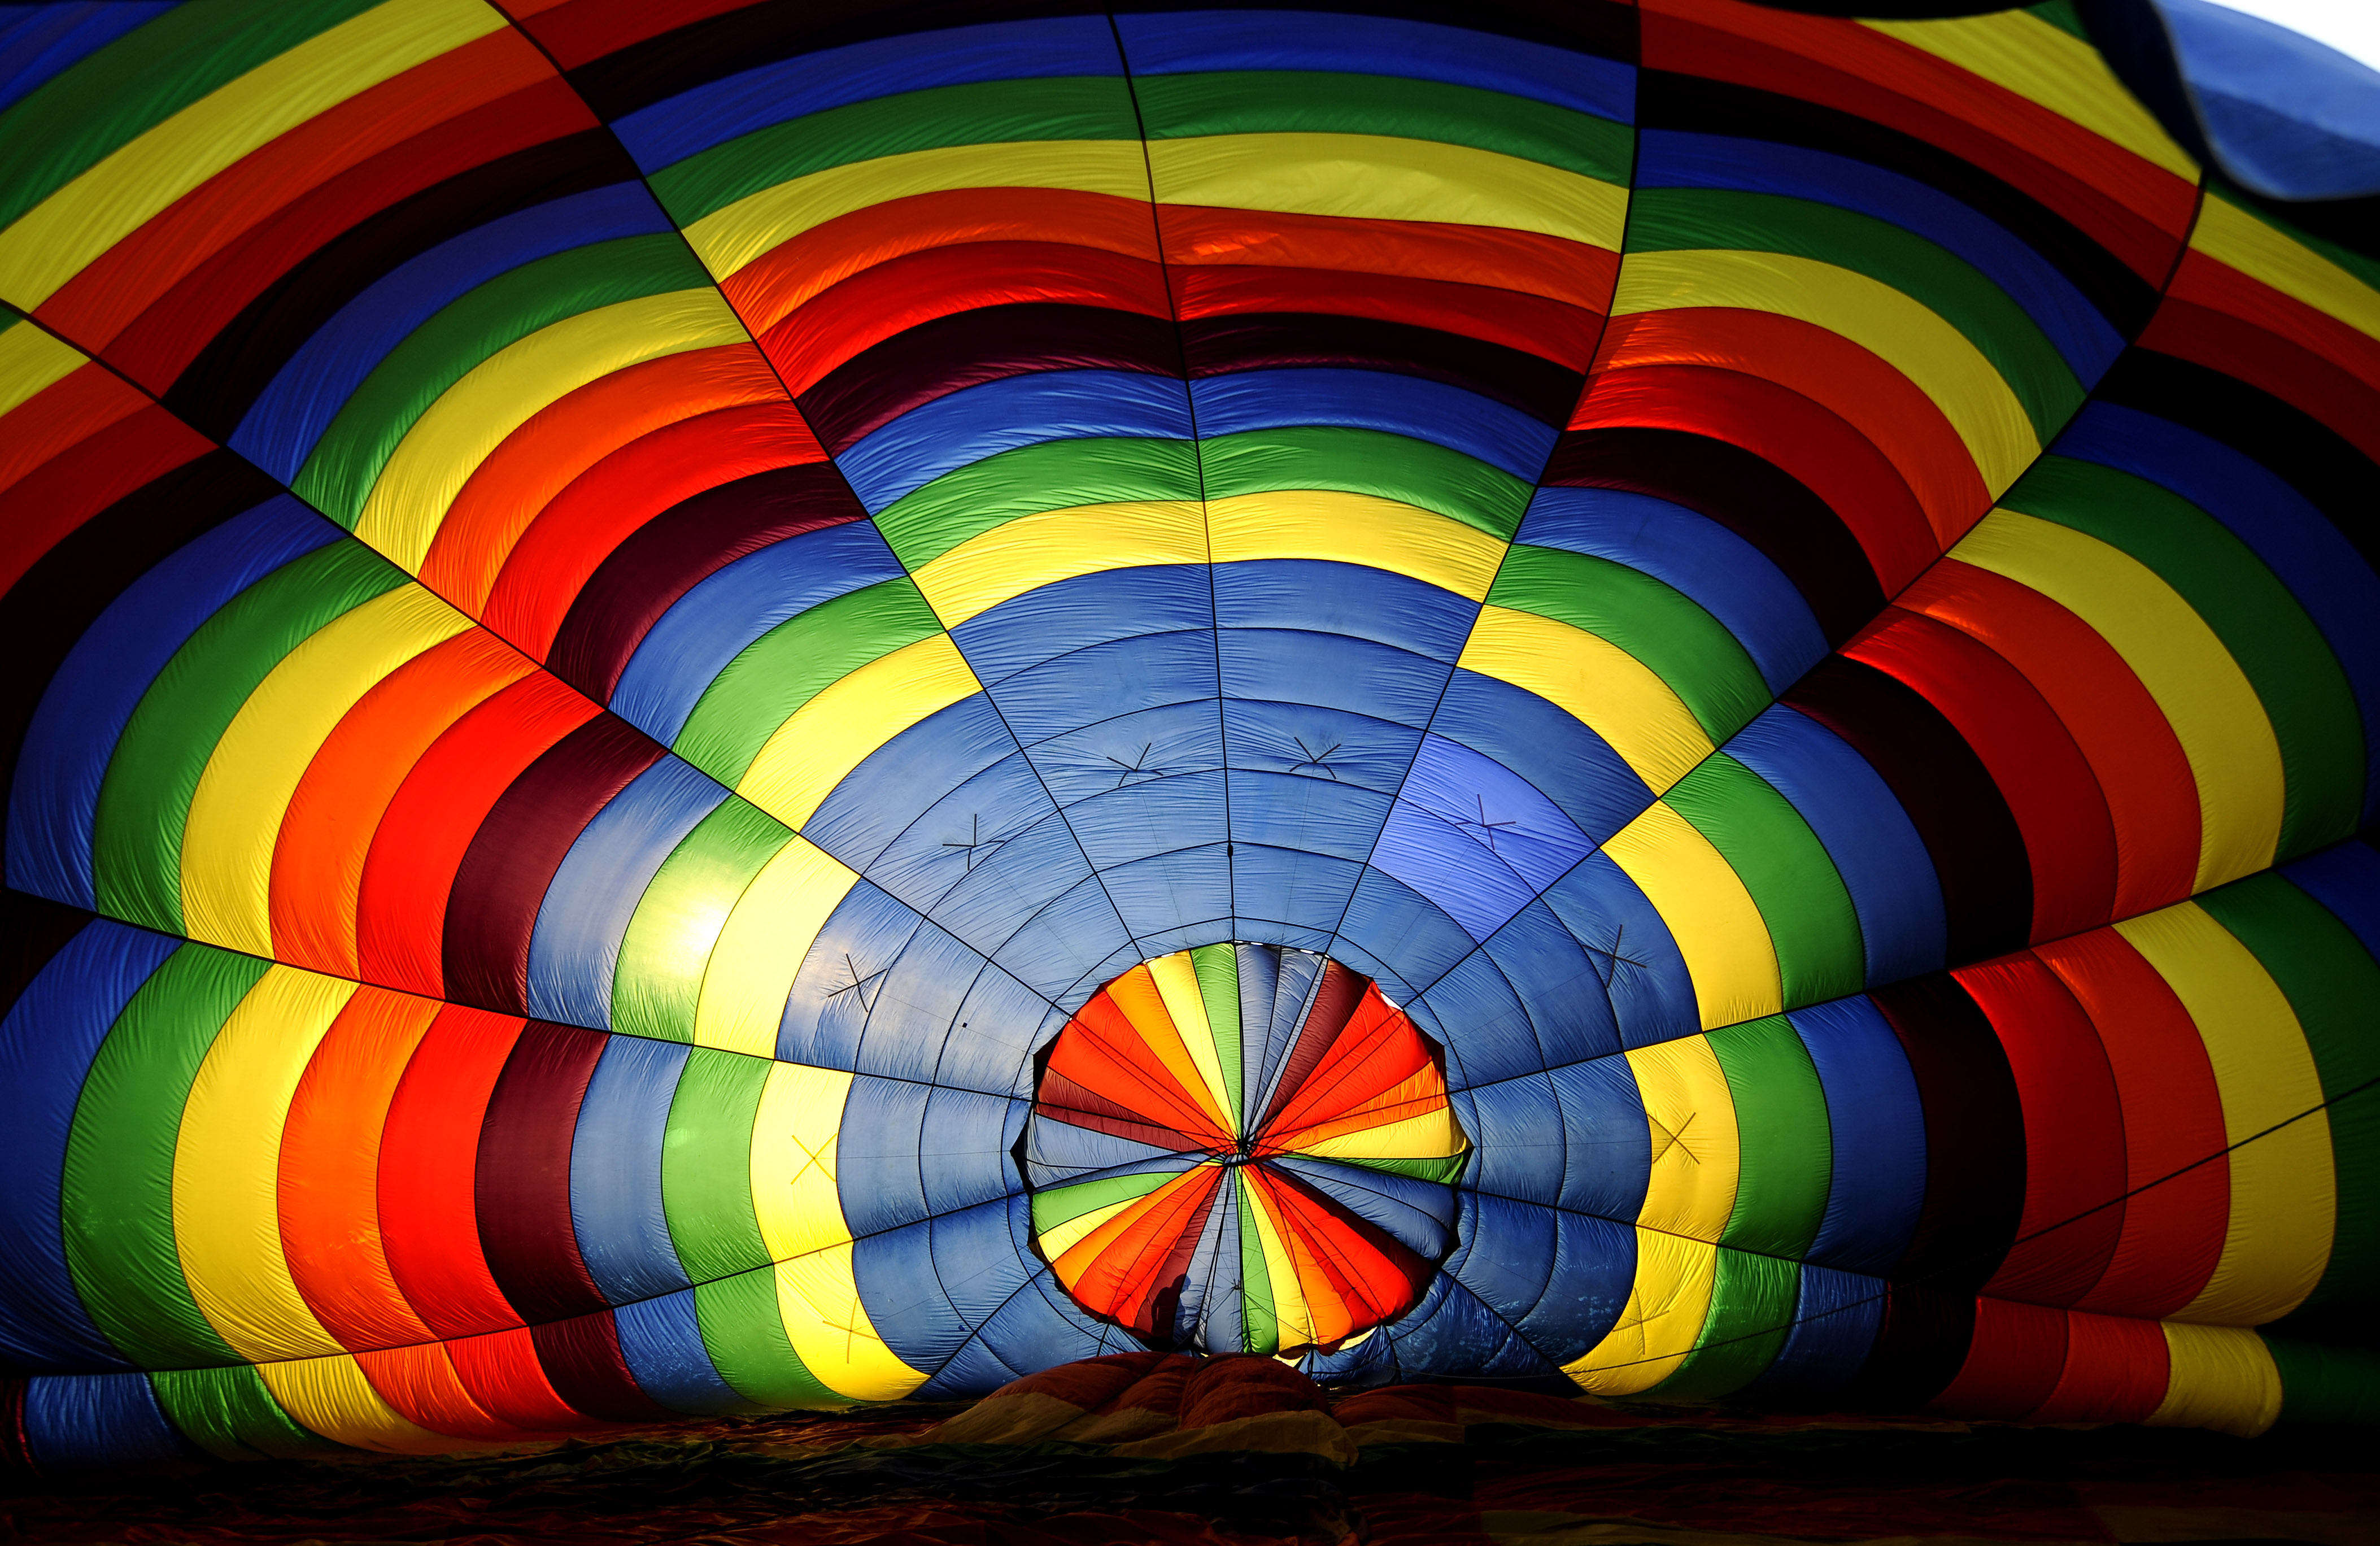 A balloon wrangler untangles lines on a hot air balloon at the 26th Annual Quick Chek New Jersey Festival of Ballooning at the Solberg Airport July 26, 2008 in Readington, New Jersey. (Photo by Jeff Zelevansky/Getty Images)